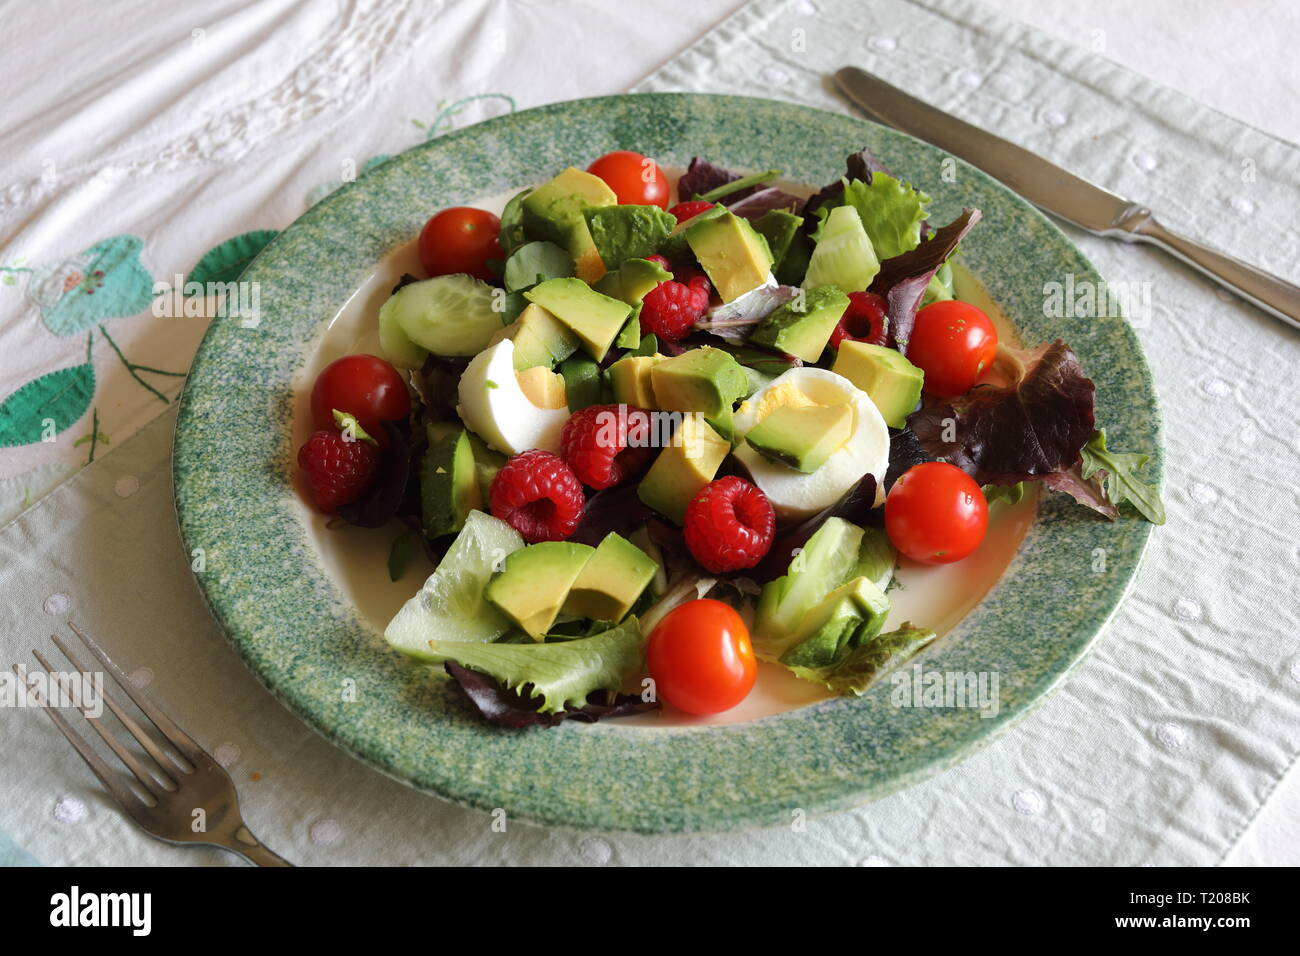 A Poole Pottery plate containing a healthy salad - Stock Image